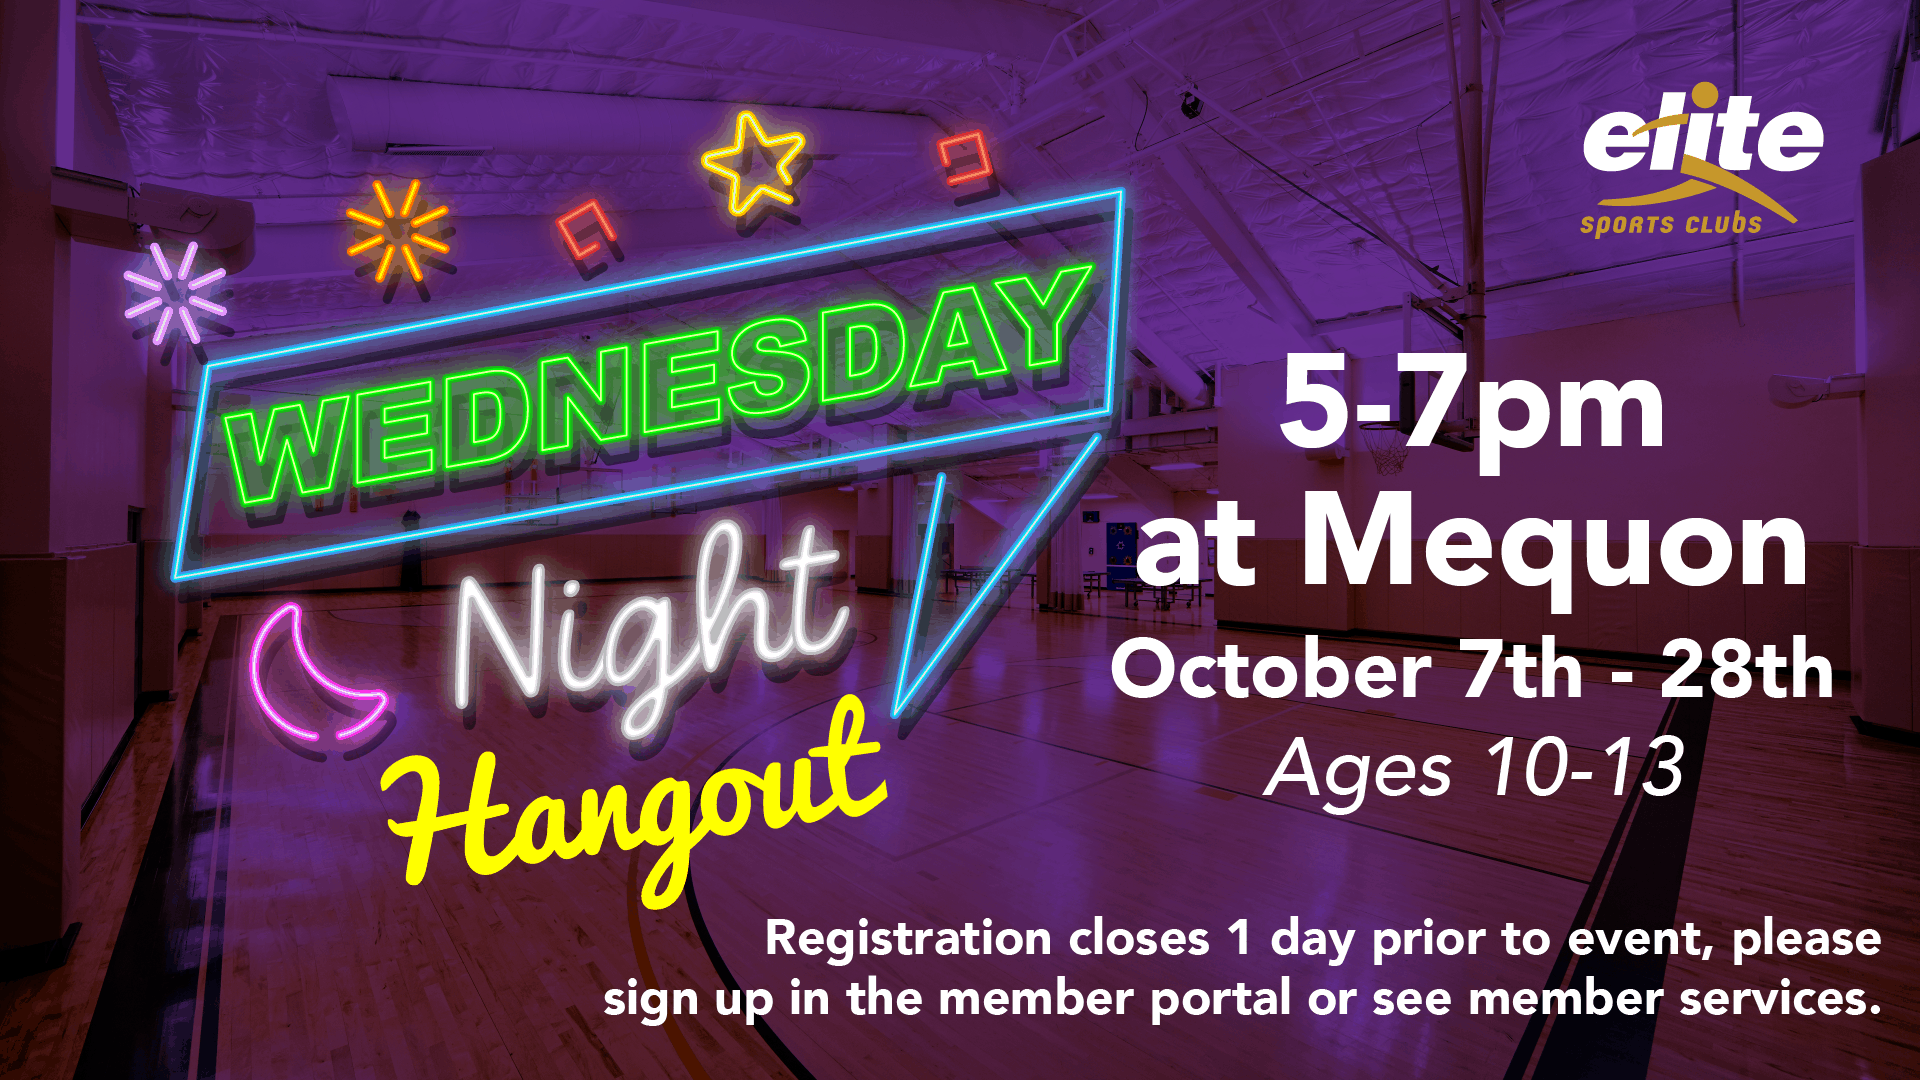 Wednesday Night Hangout - Elite Mequon - October 2020